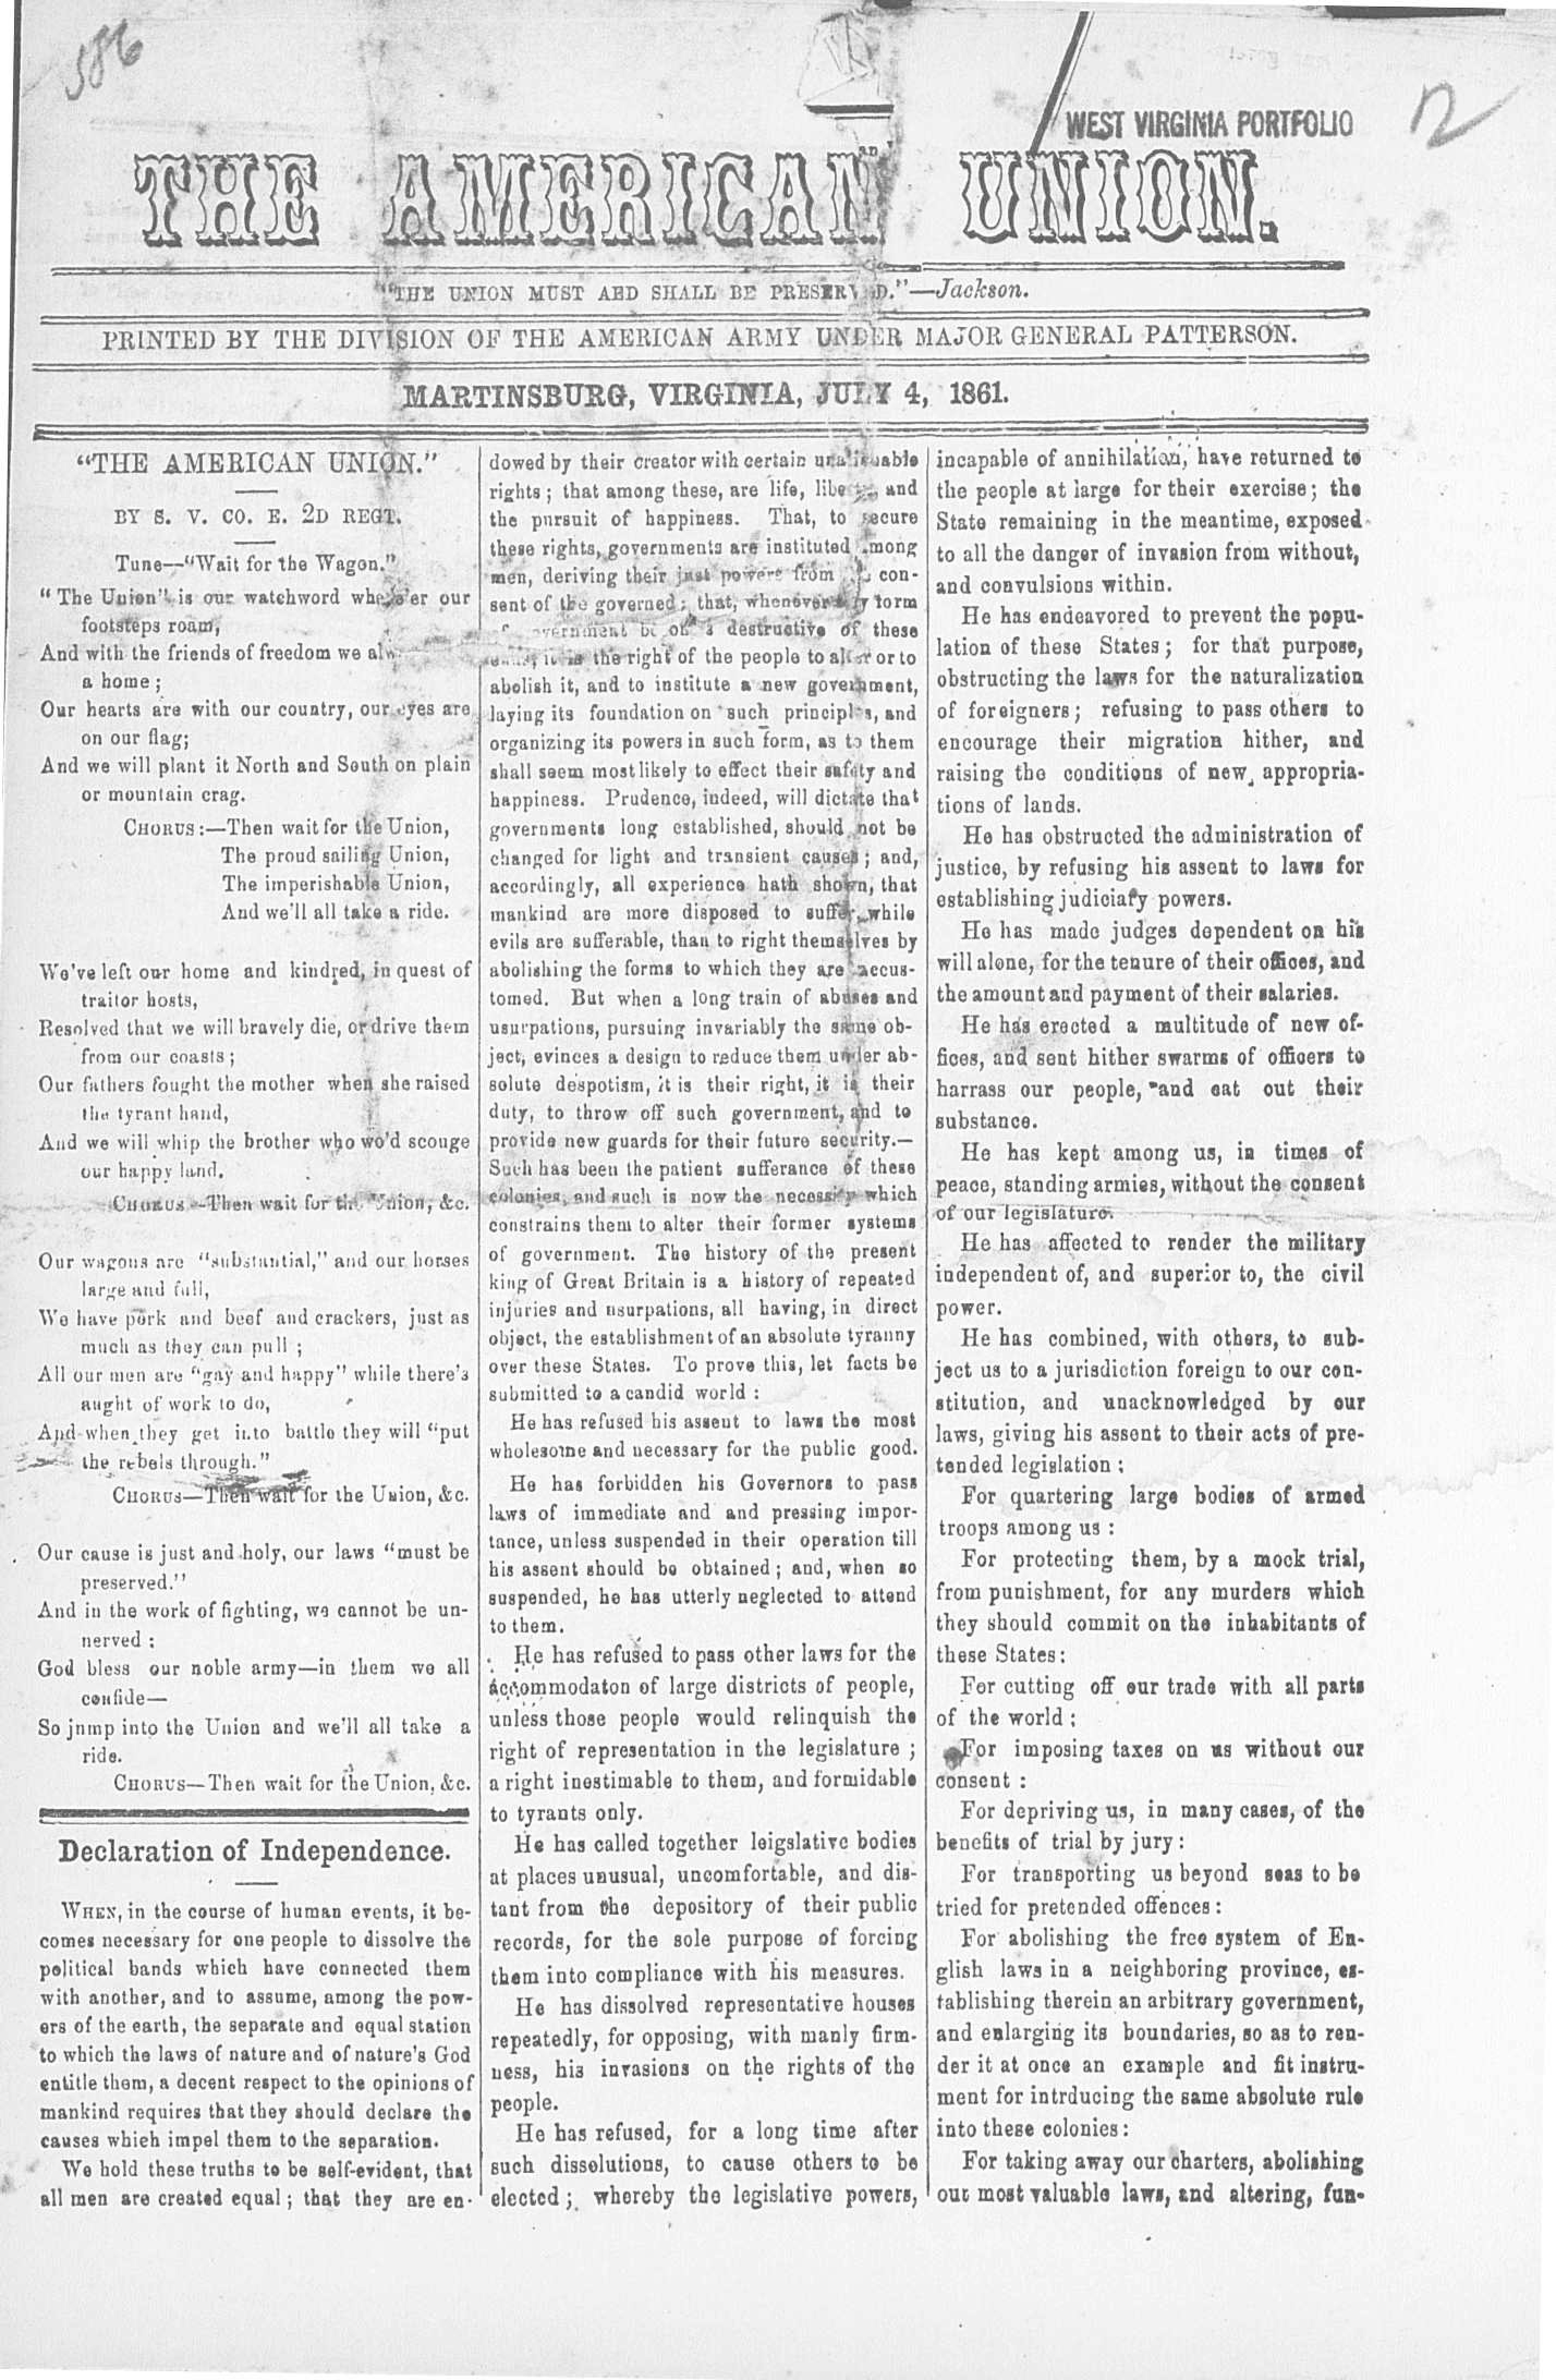 The American Union. (Martinsburg, Va. [W. Va.]),  July 4, 1861. Front page news: The Fourth of July, 1861, printed during the Civil War for the Union Army.